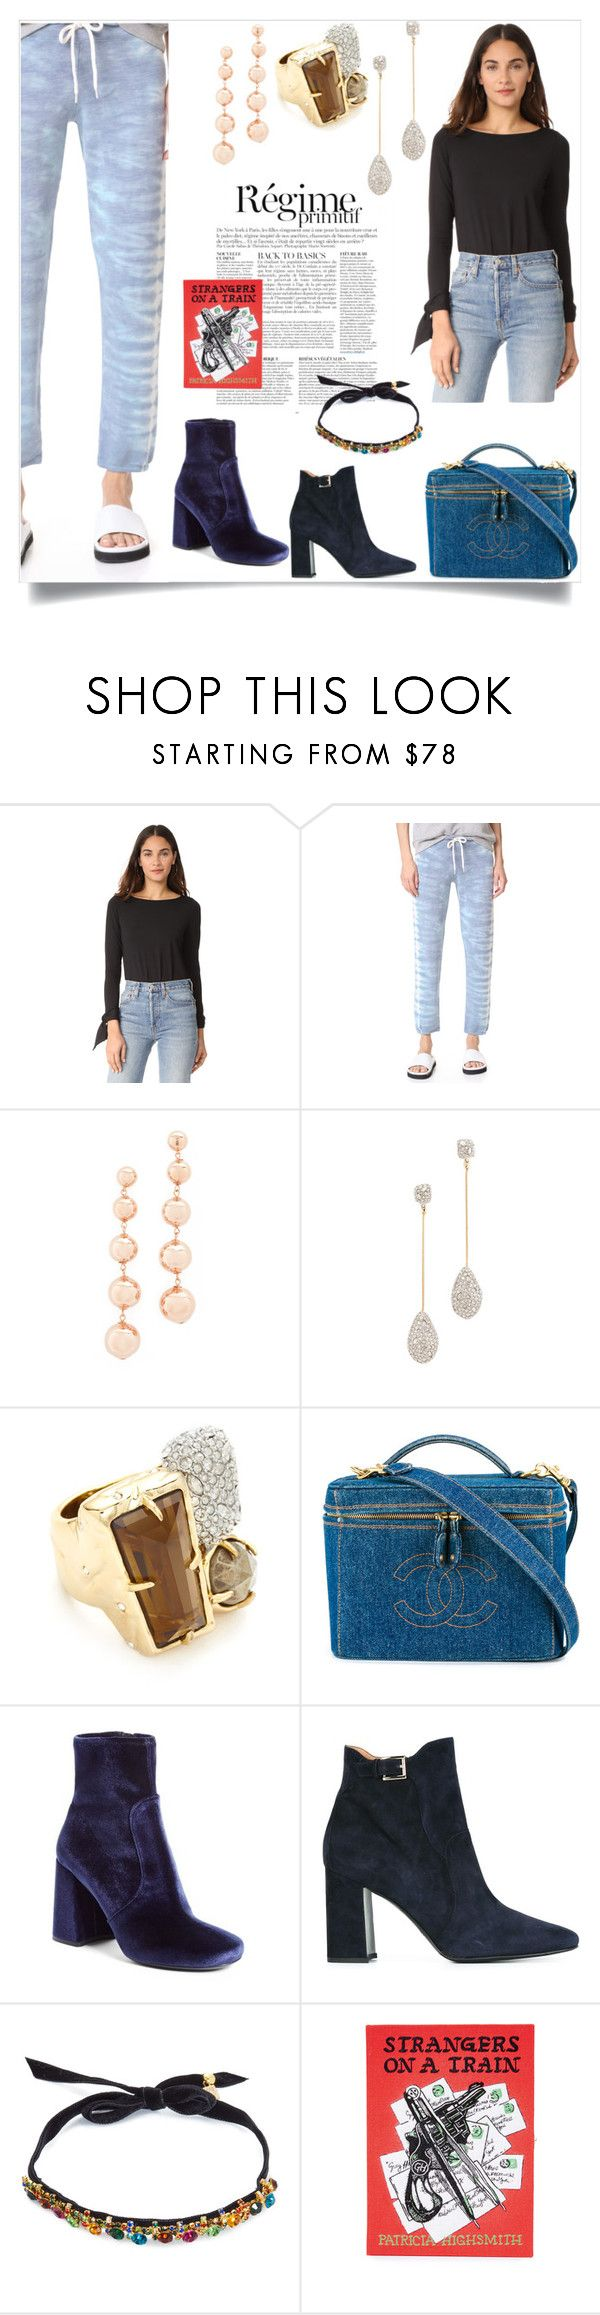 """""""Fashion Style"""" by denisee-denisee ❤ liked on Polyvore featuring Anja, Susana Monaco, Monrow, Kate Spade, Alexis Bittar, Chanel, Prada, Fratelli Rossetti, DANNIJO and Olympia Le-Tan"""